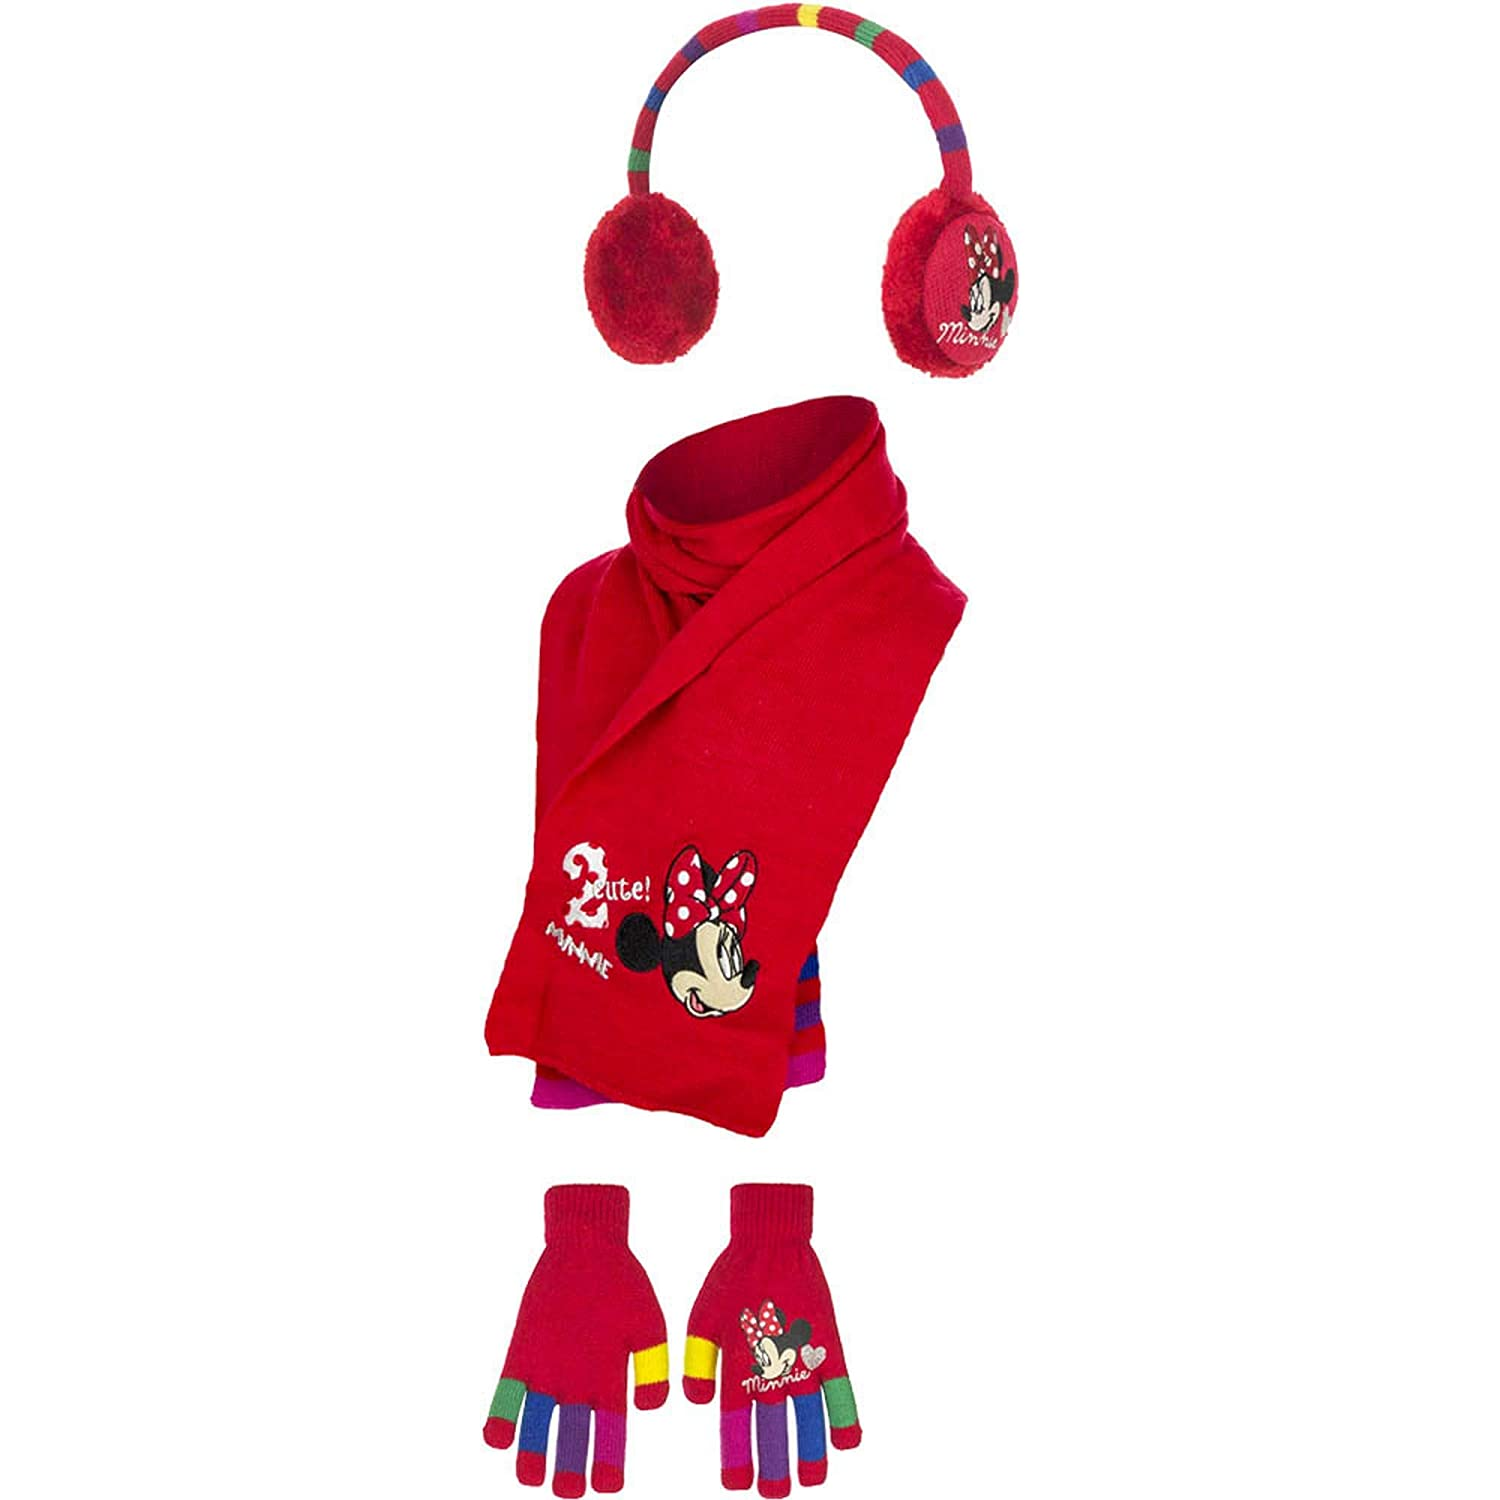 Disney Minnie Mouse Childrens Girls 2 Cute Winter Earwarmers, Scarf Gloves Set Scarf and Gloves Set (One Size) (Red) UTGL615_1